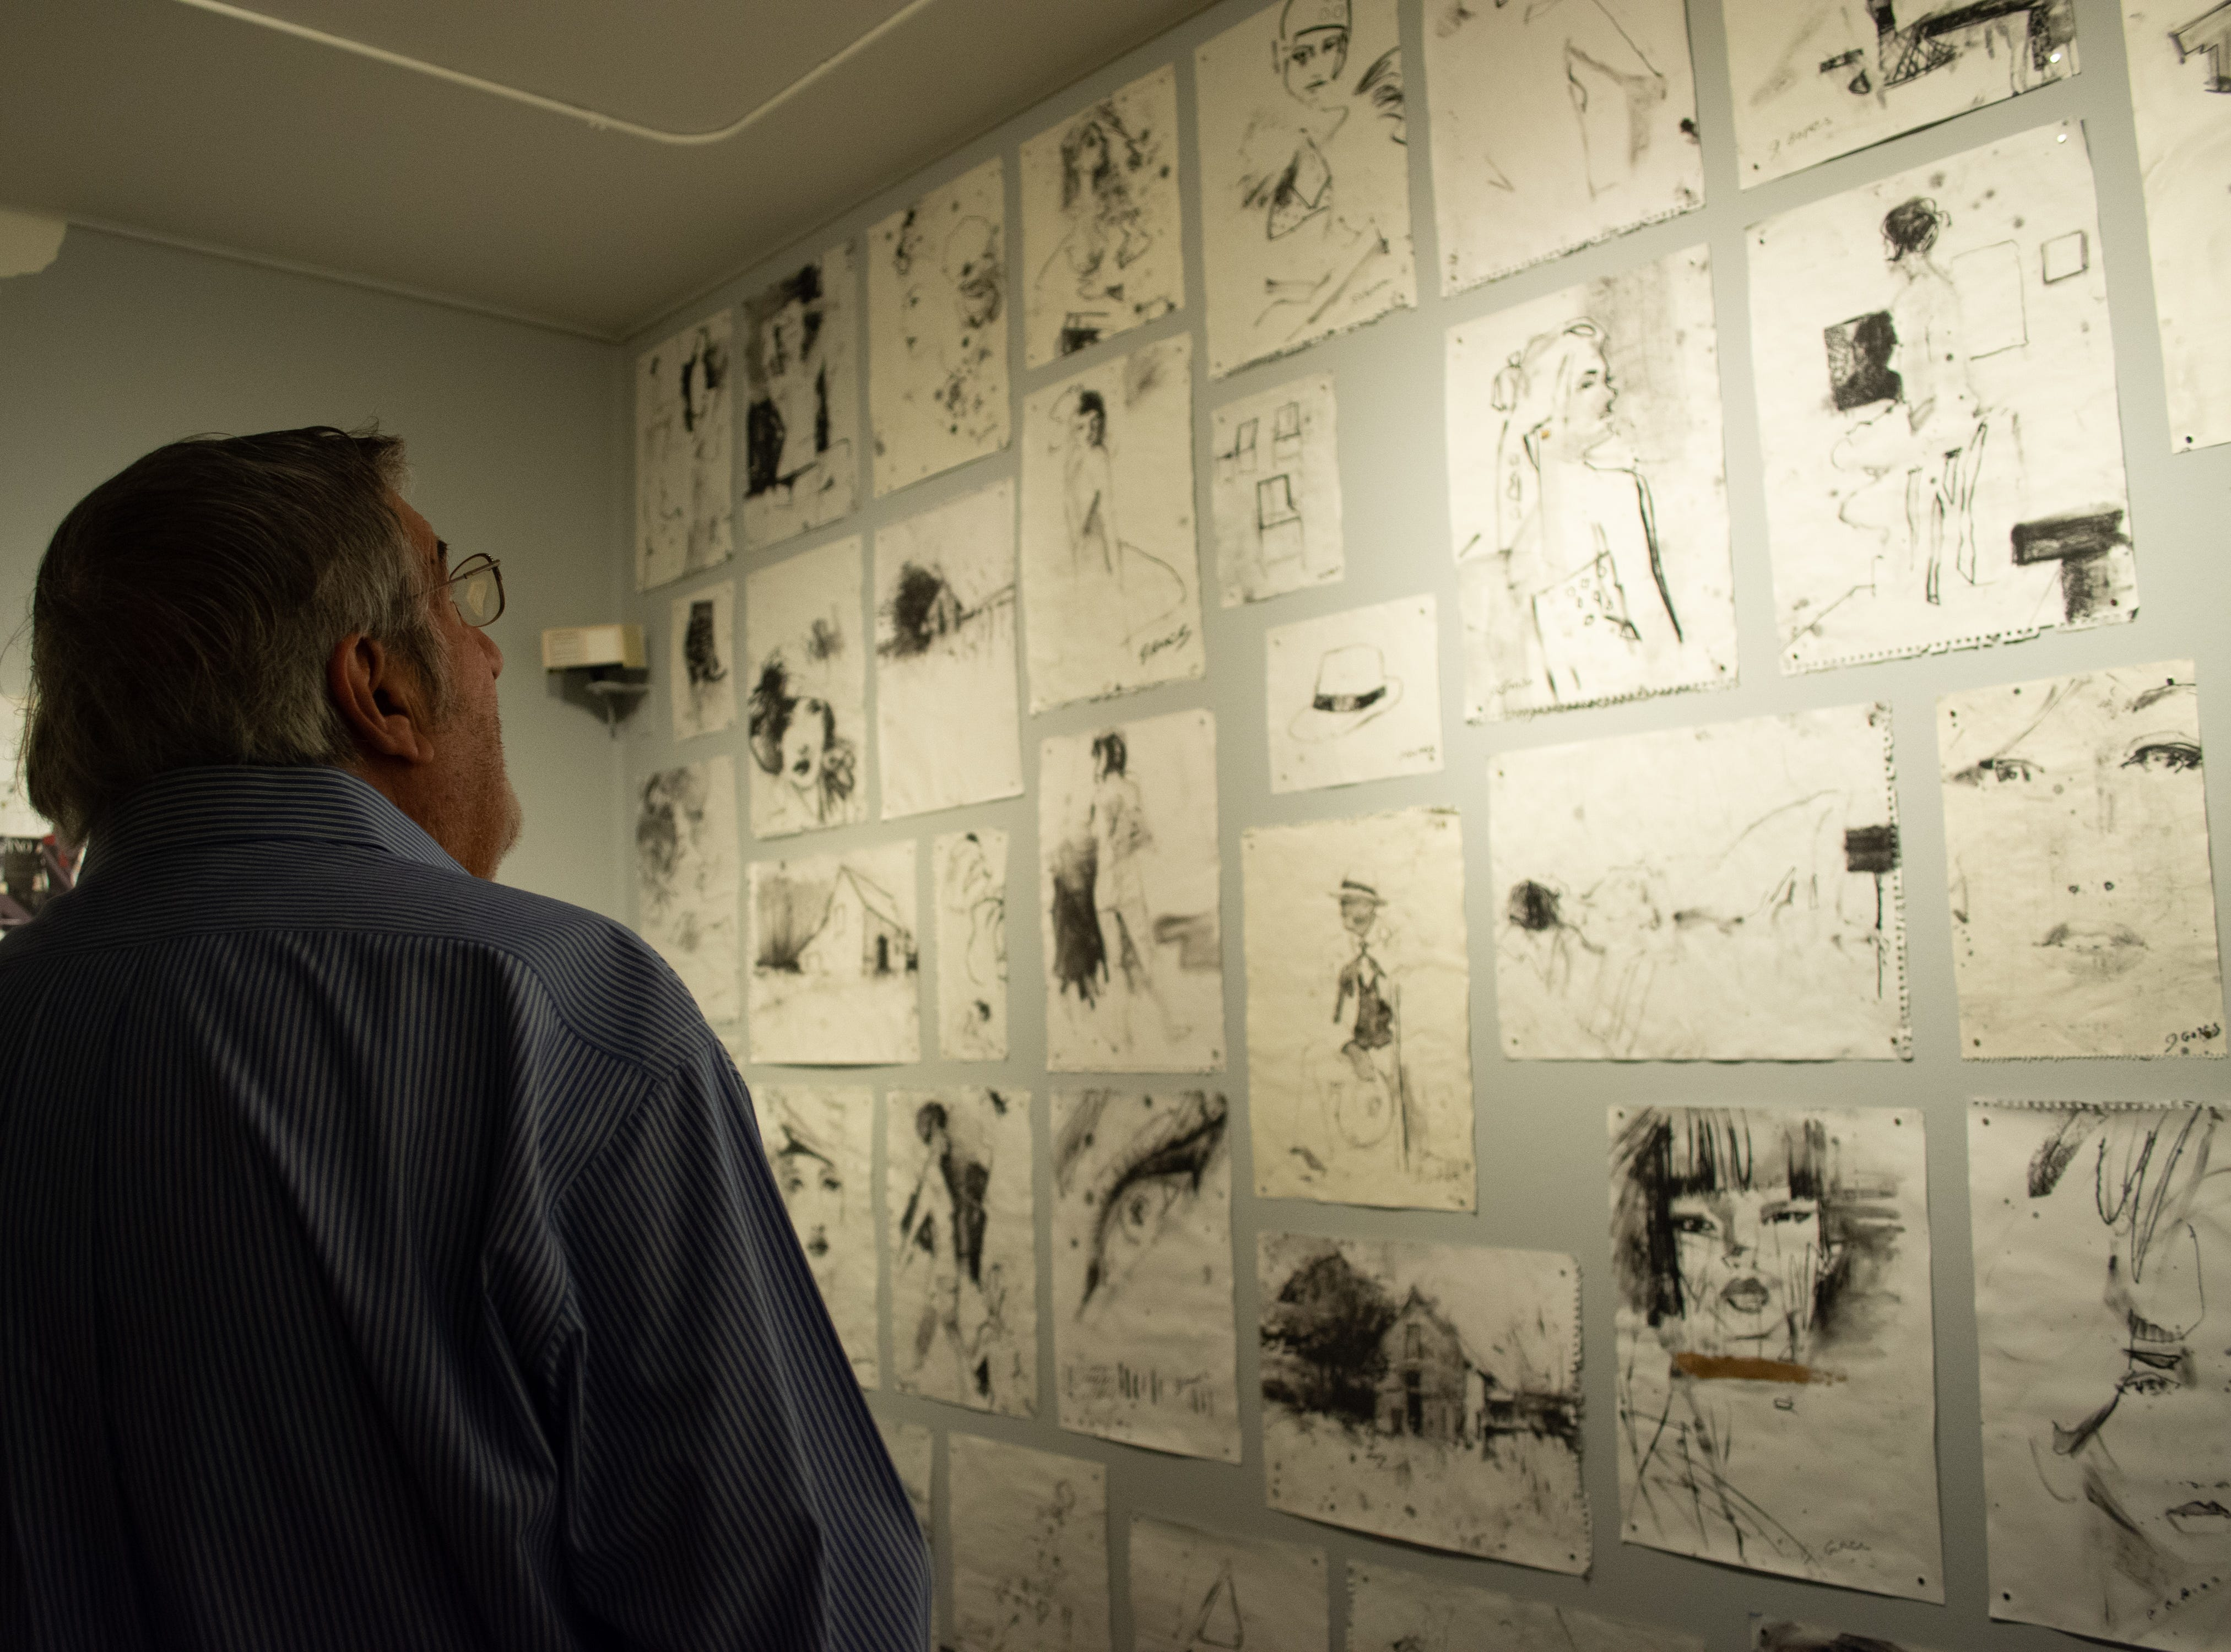 Tony Alonso takes a look at the wall of wet paintings.